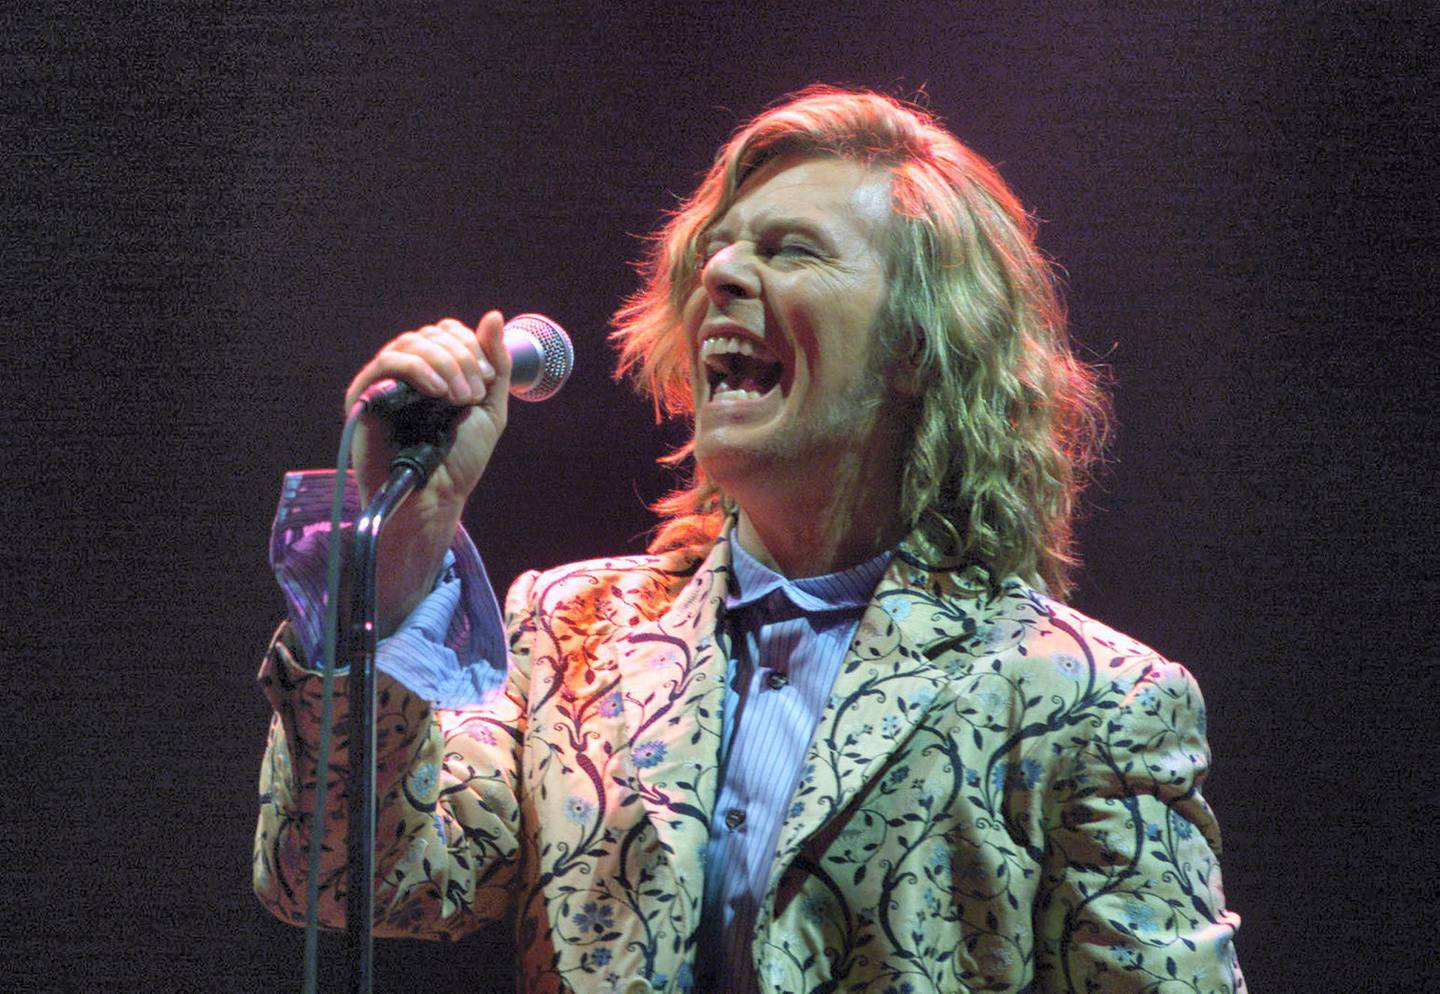 Rock Star David Bowie headlines at the Glastonbury Festival 2000 June 25. Day three of the festival saw a performance by rock legend Bowie playing for the first time at Glastonbury since 1971, when the event was only in its second year.  DC/CLH/